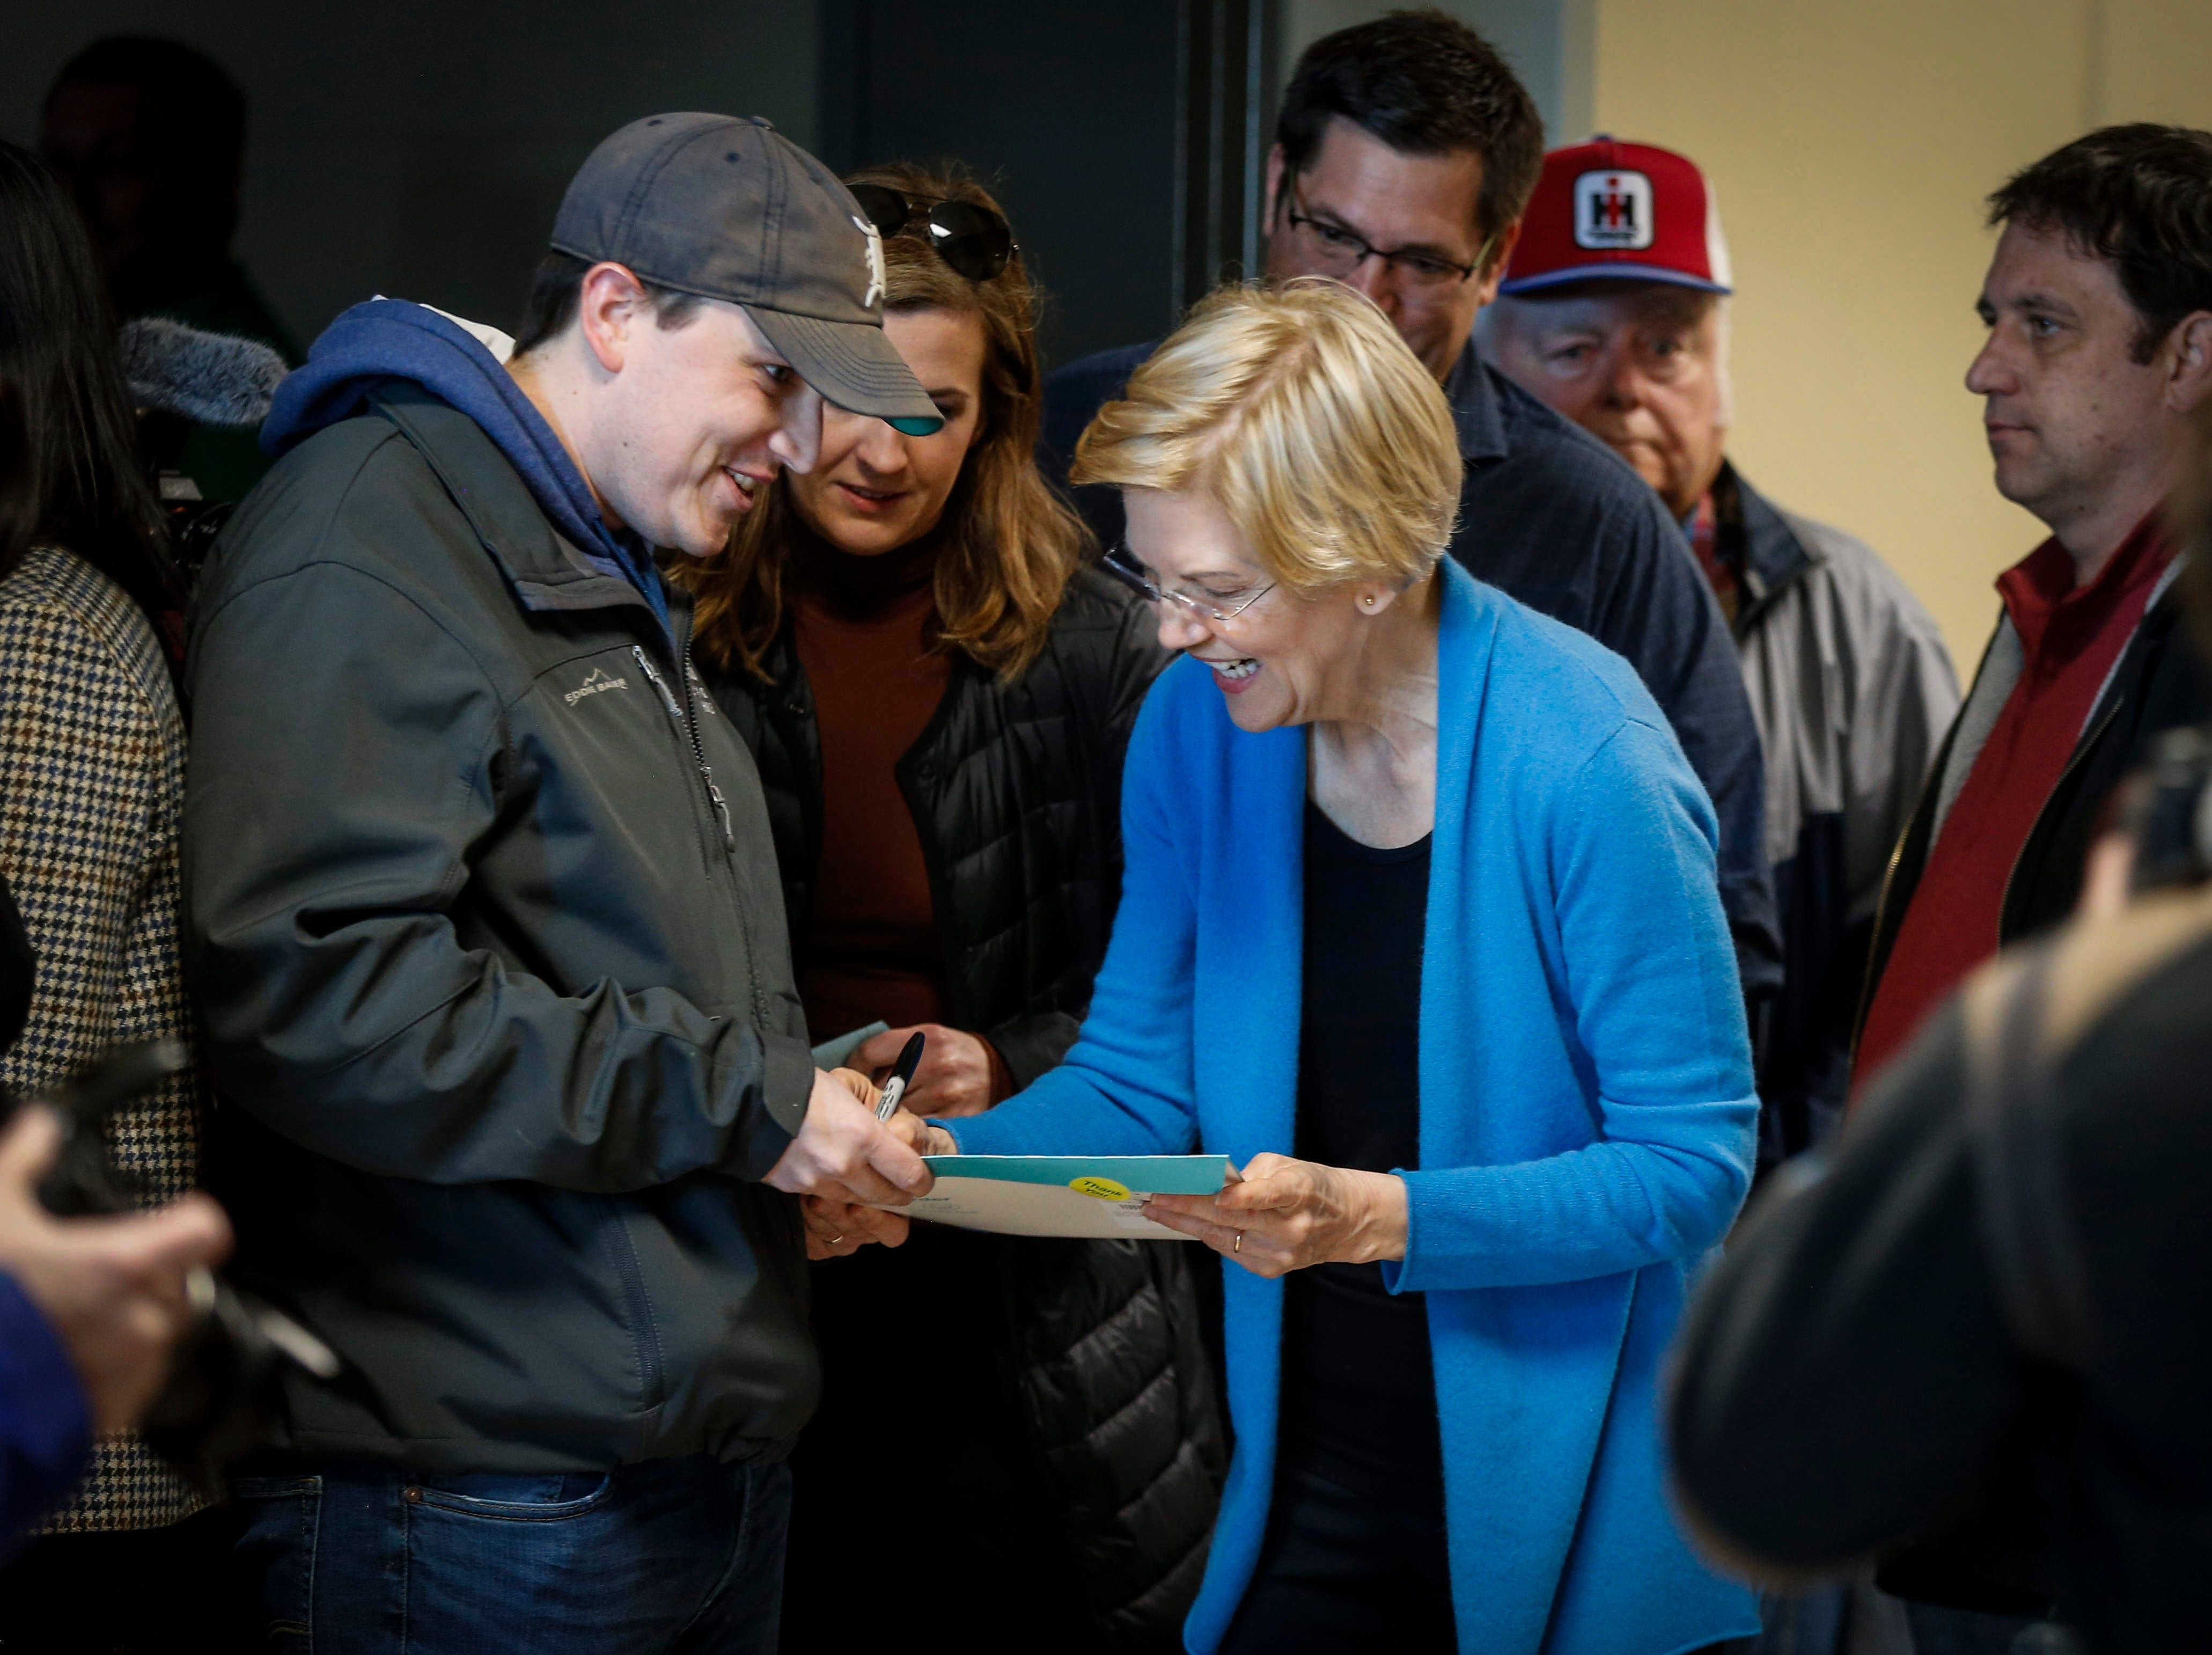 Democratic presidential candidate hopeful Elizabeth Warren signs an autograph during the Family Farm Action rally in Storm Lake on March 30, 2019.